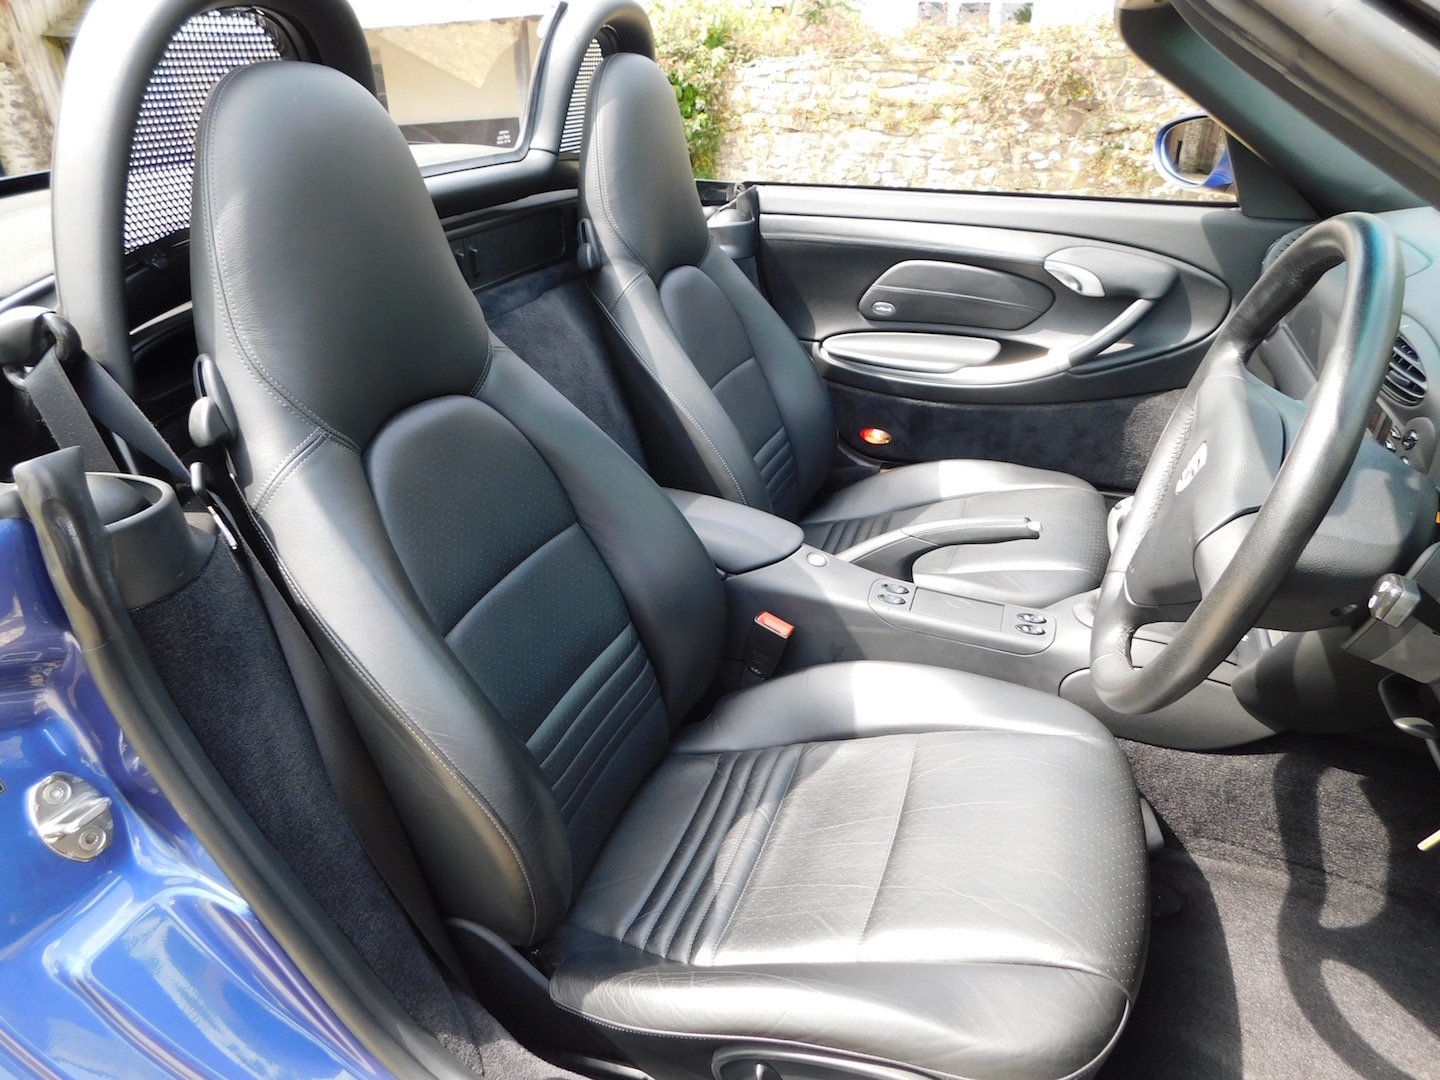 2000 Porsche 986 Boxster 3.2 S - 1 owner, 19k miles, concours For Sale (picture 5 of 6)